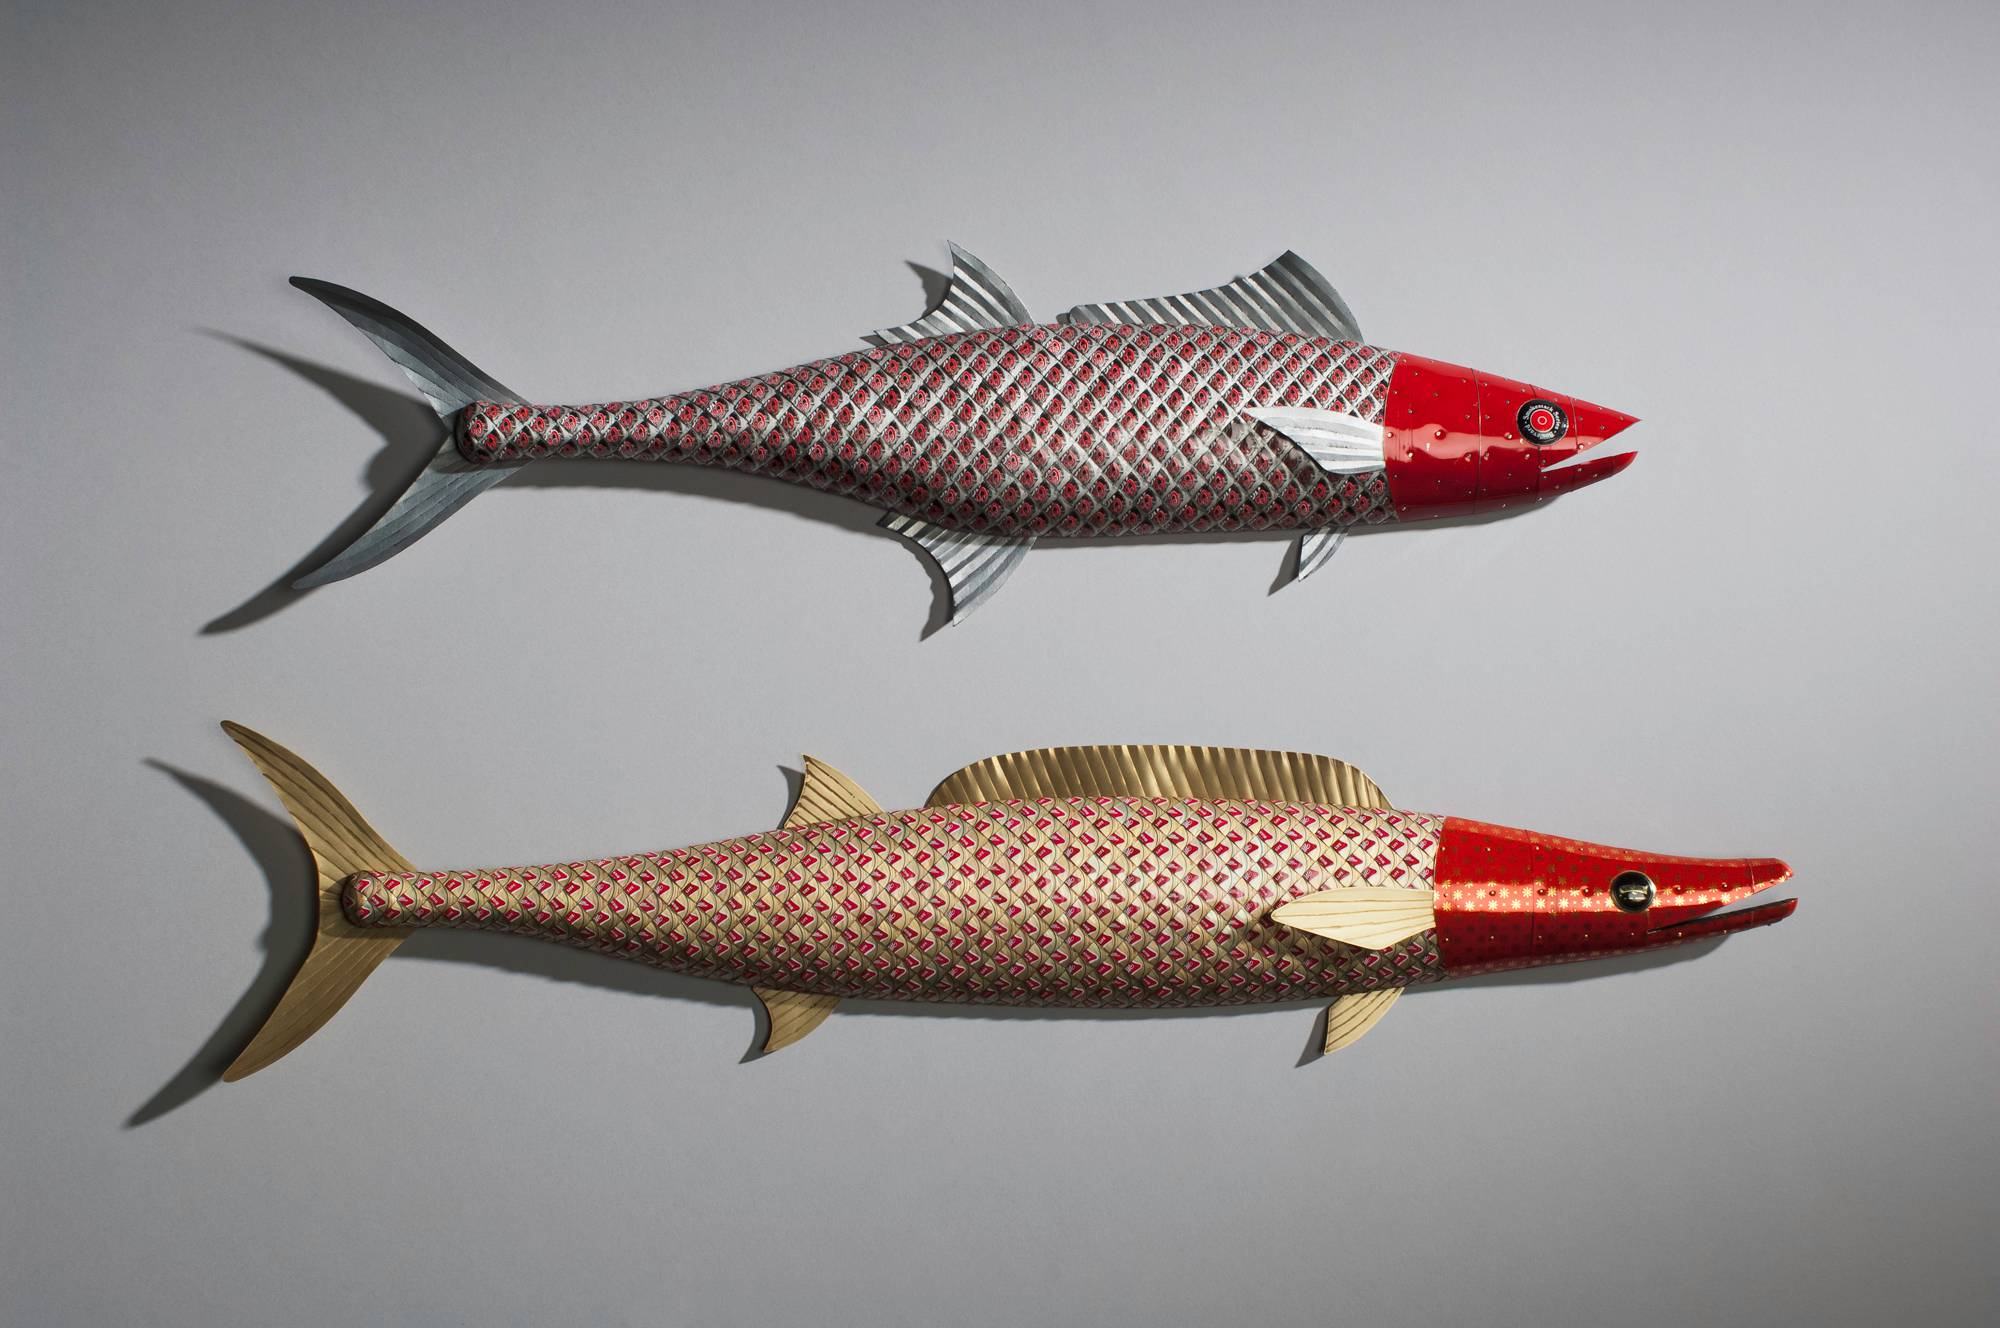 hand crafted wooden fish sculptures with bottle cap plating and metal fins